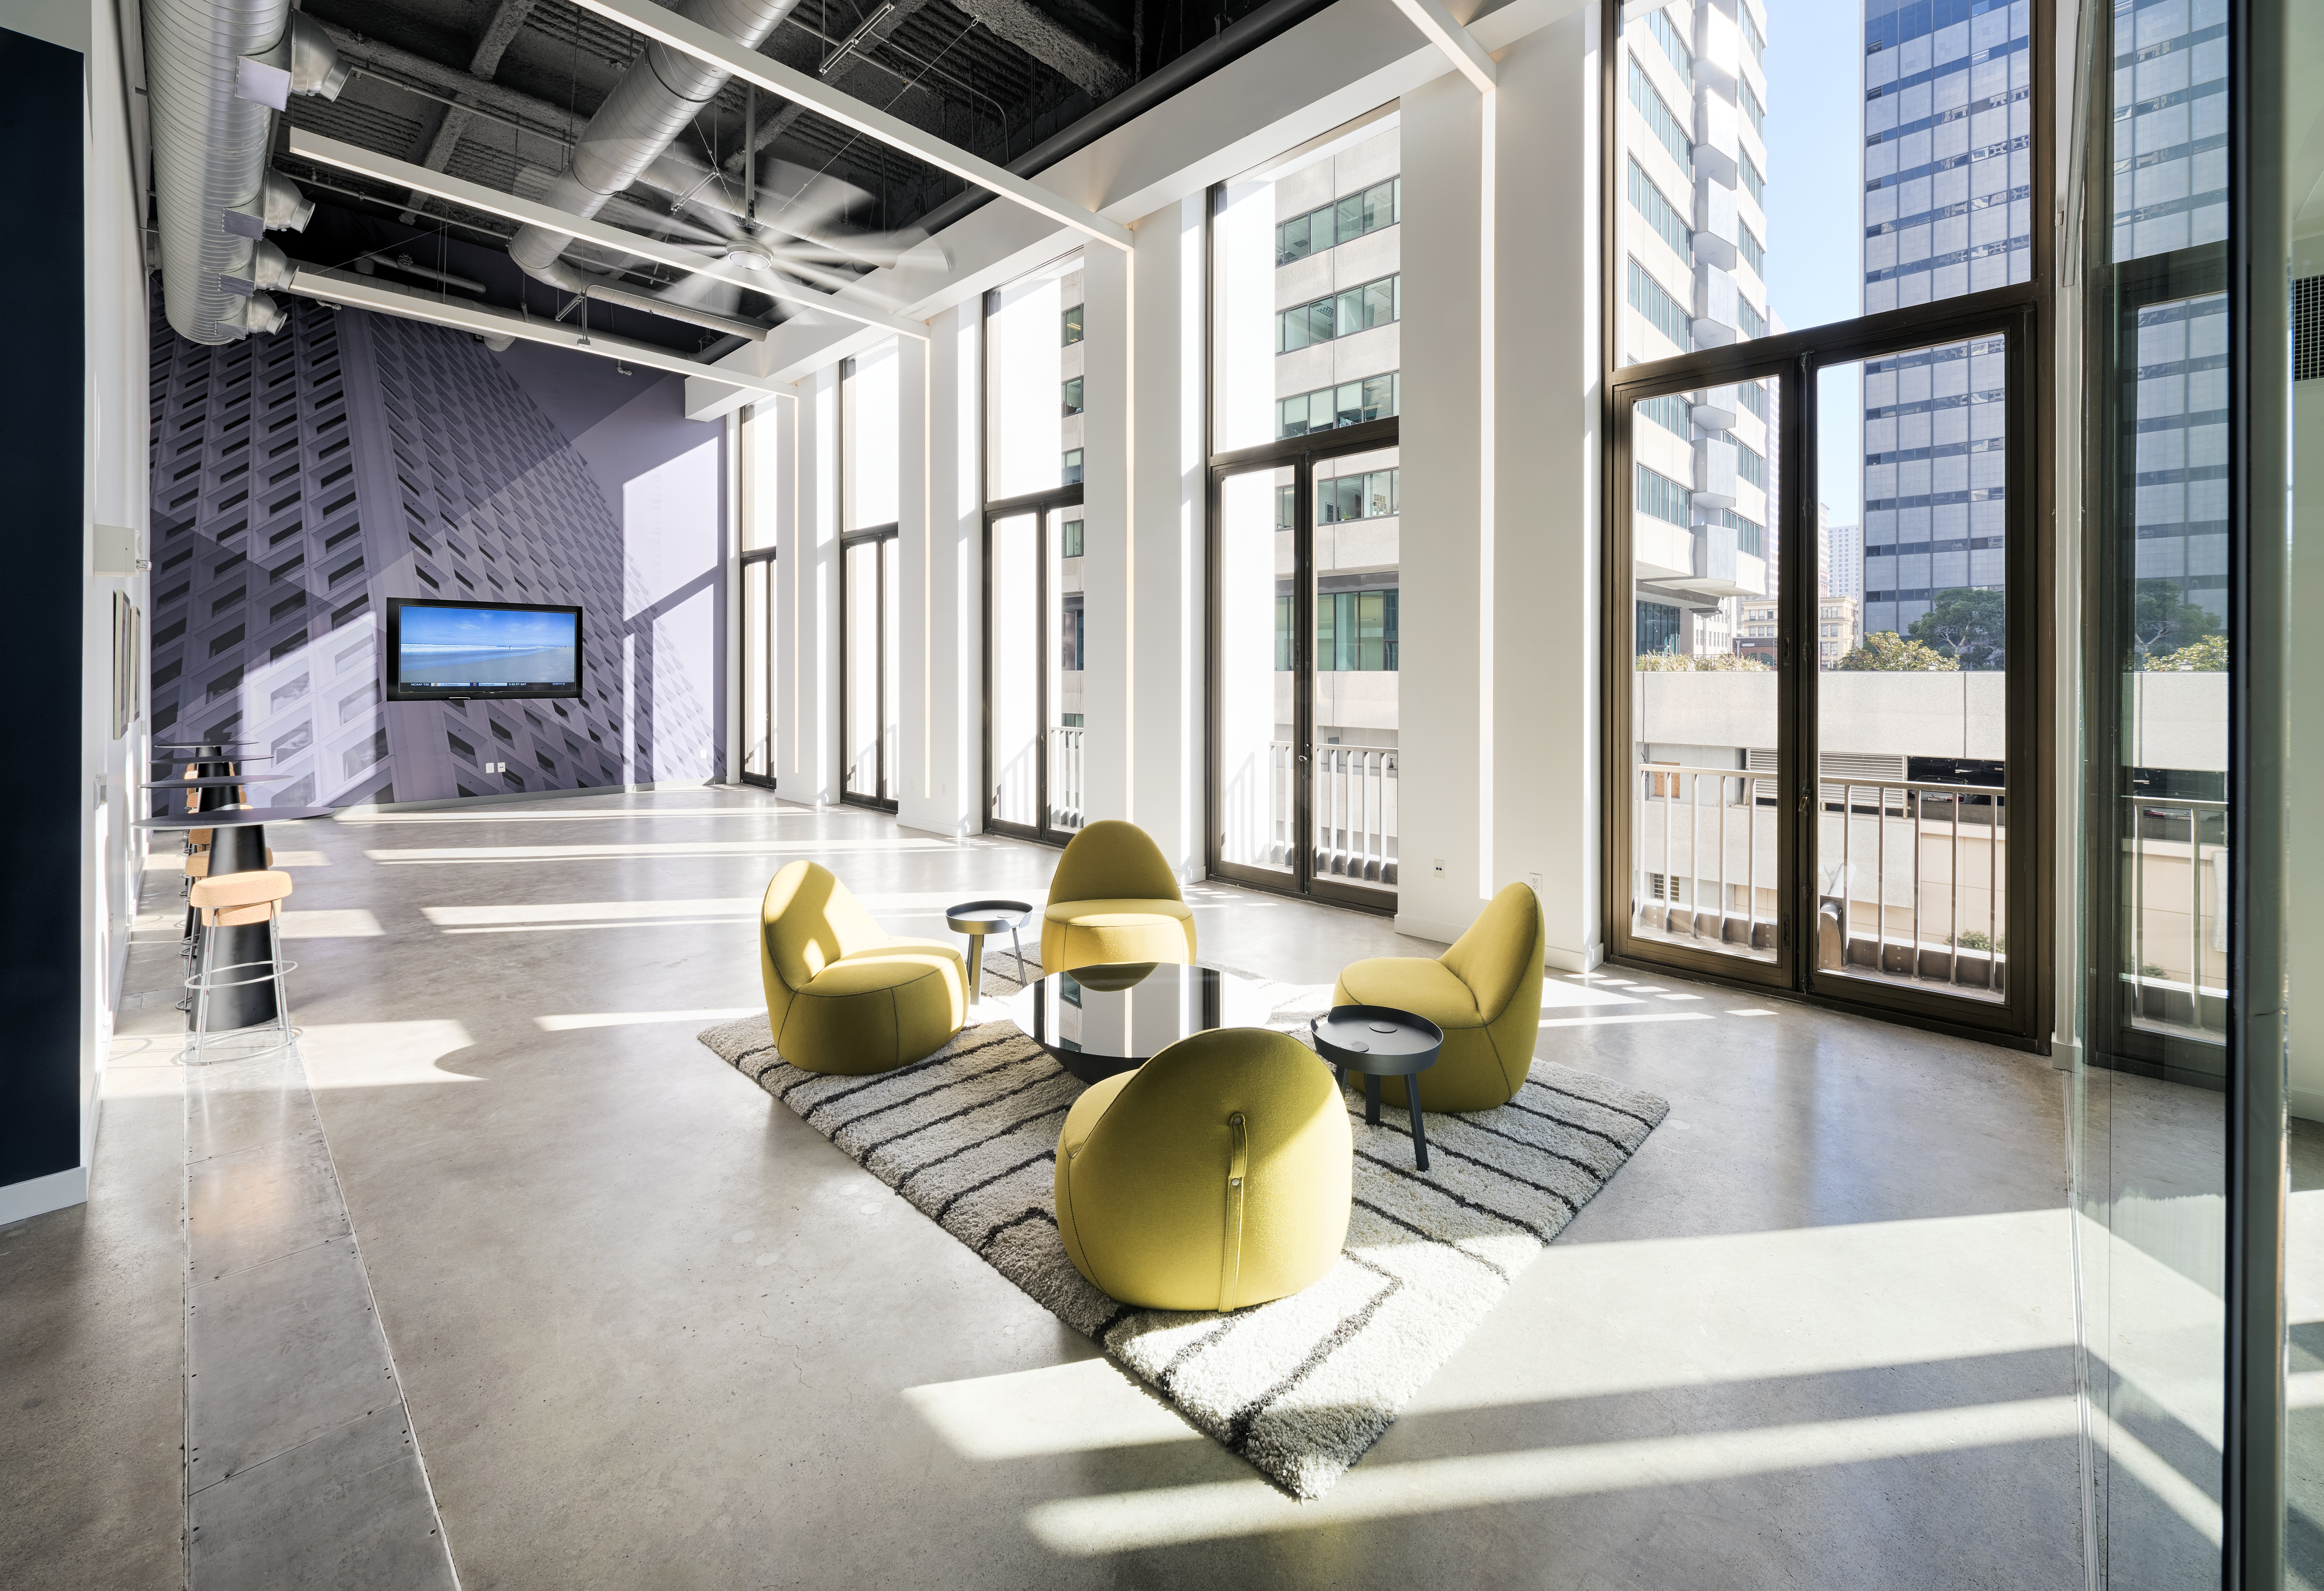 High-end upgrades and luxury amenities have driven 200,000 square feet of leasing activity at 650 California Street in the past year, including a new 86,000-square-foot lease with Affirm signed in April. (Photo: Business Wire)